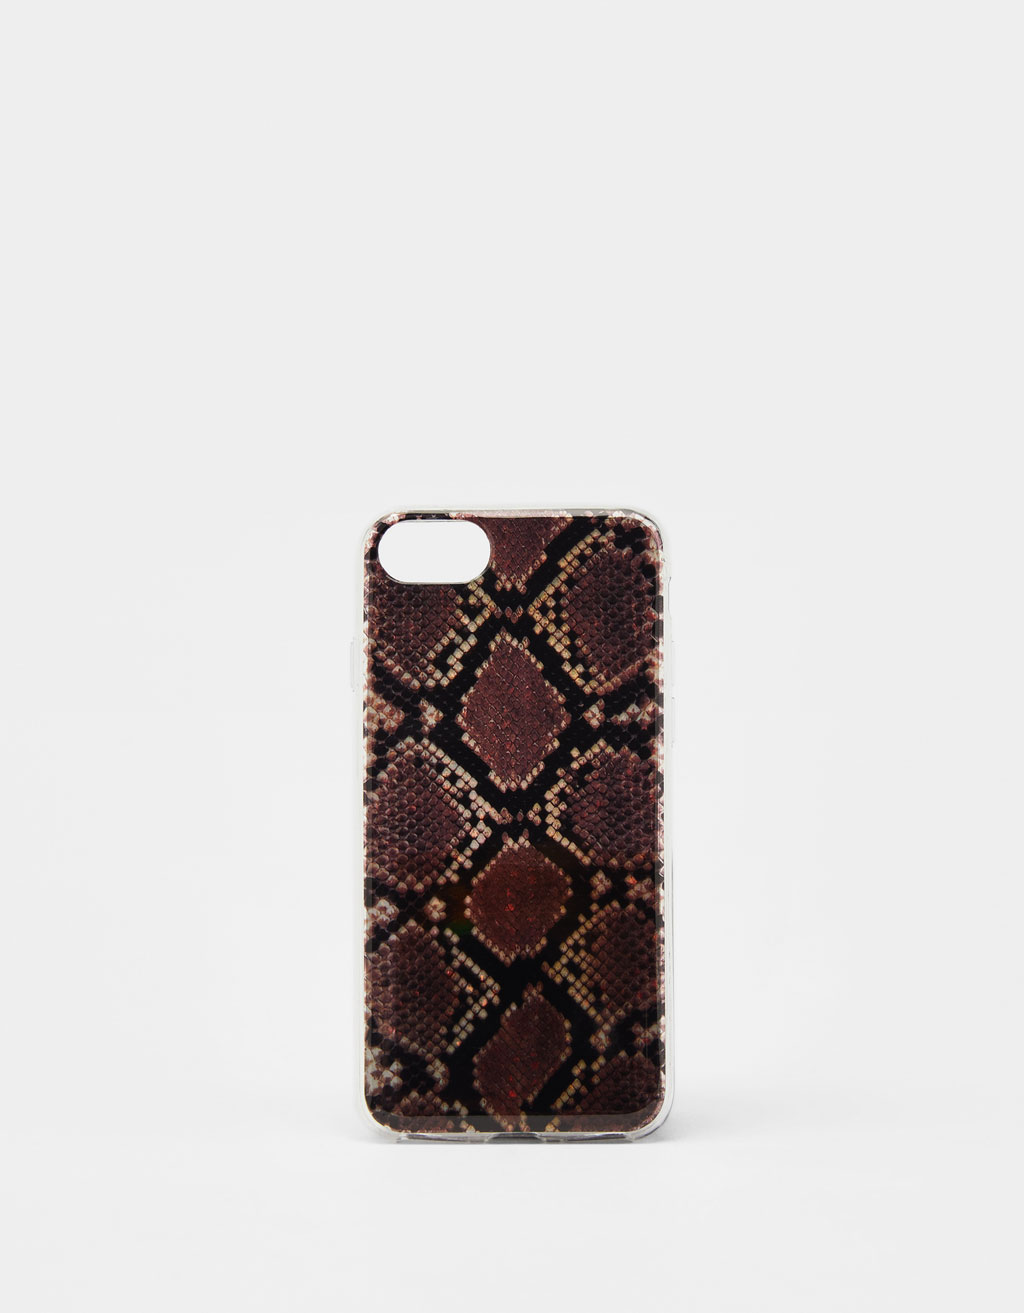 Coque serpent iPhone 6 / 6s / 7 / 8